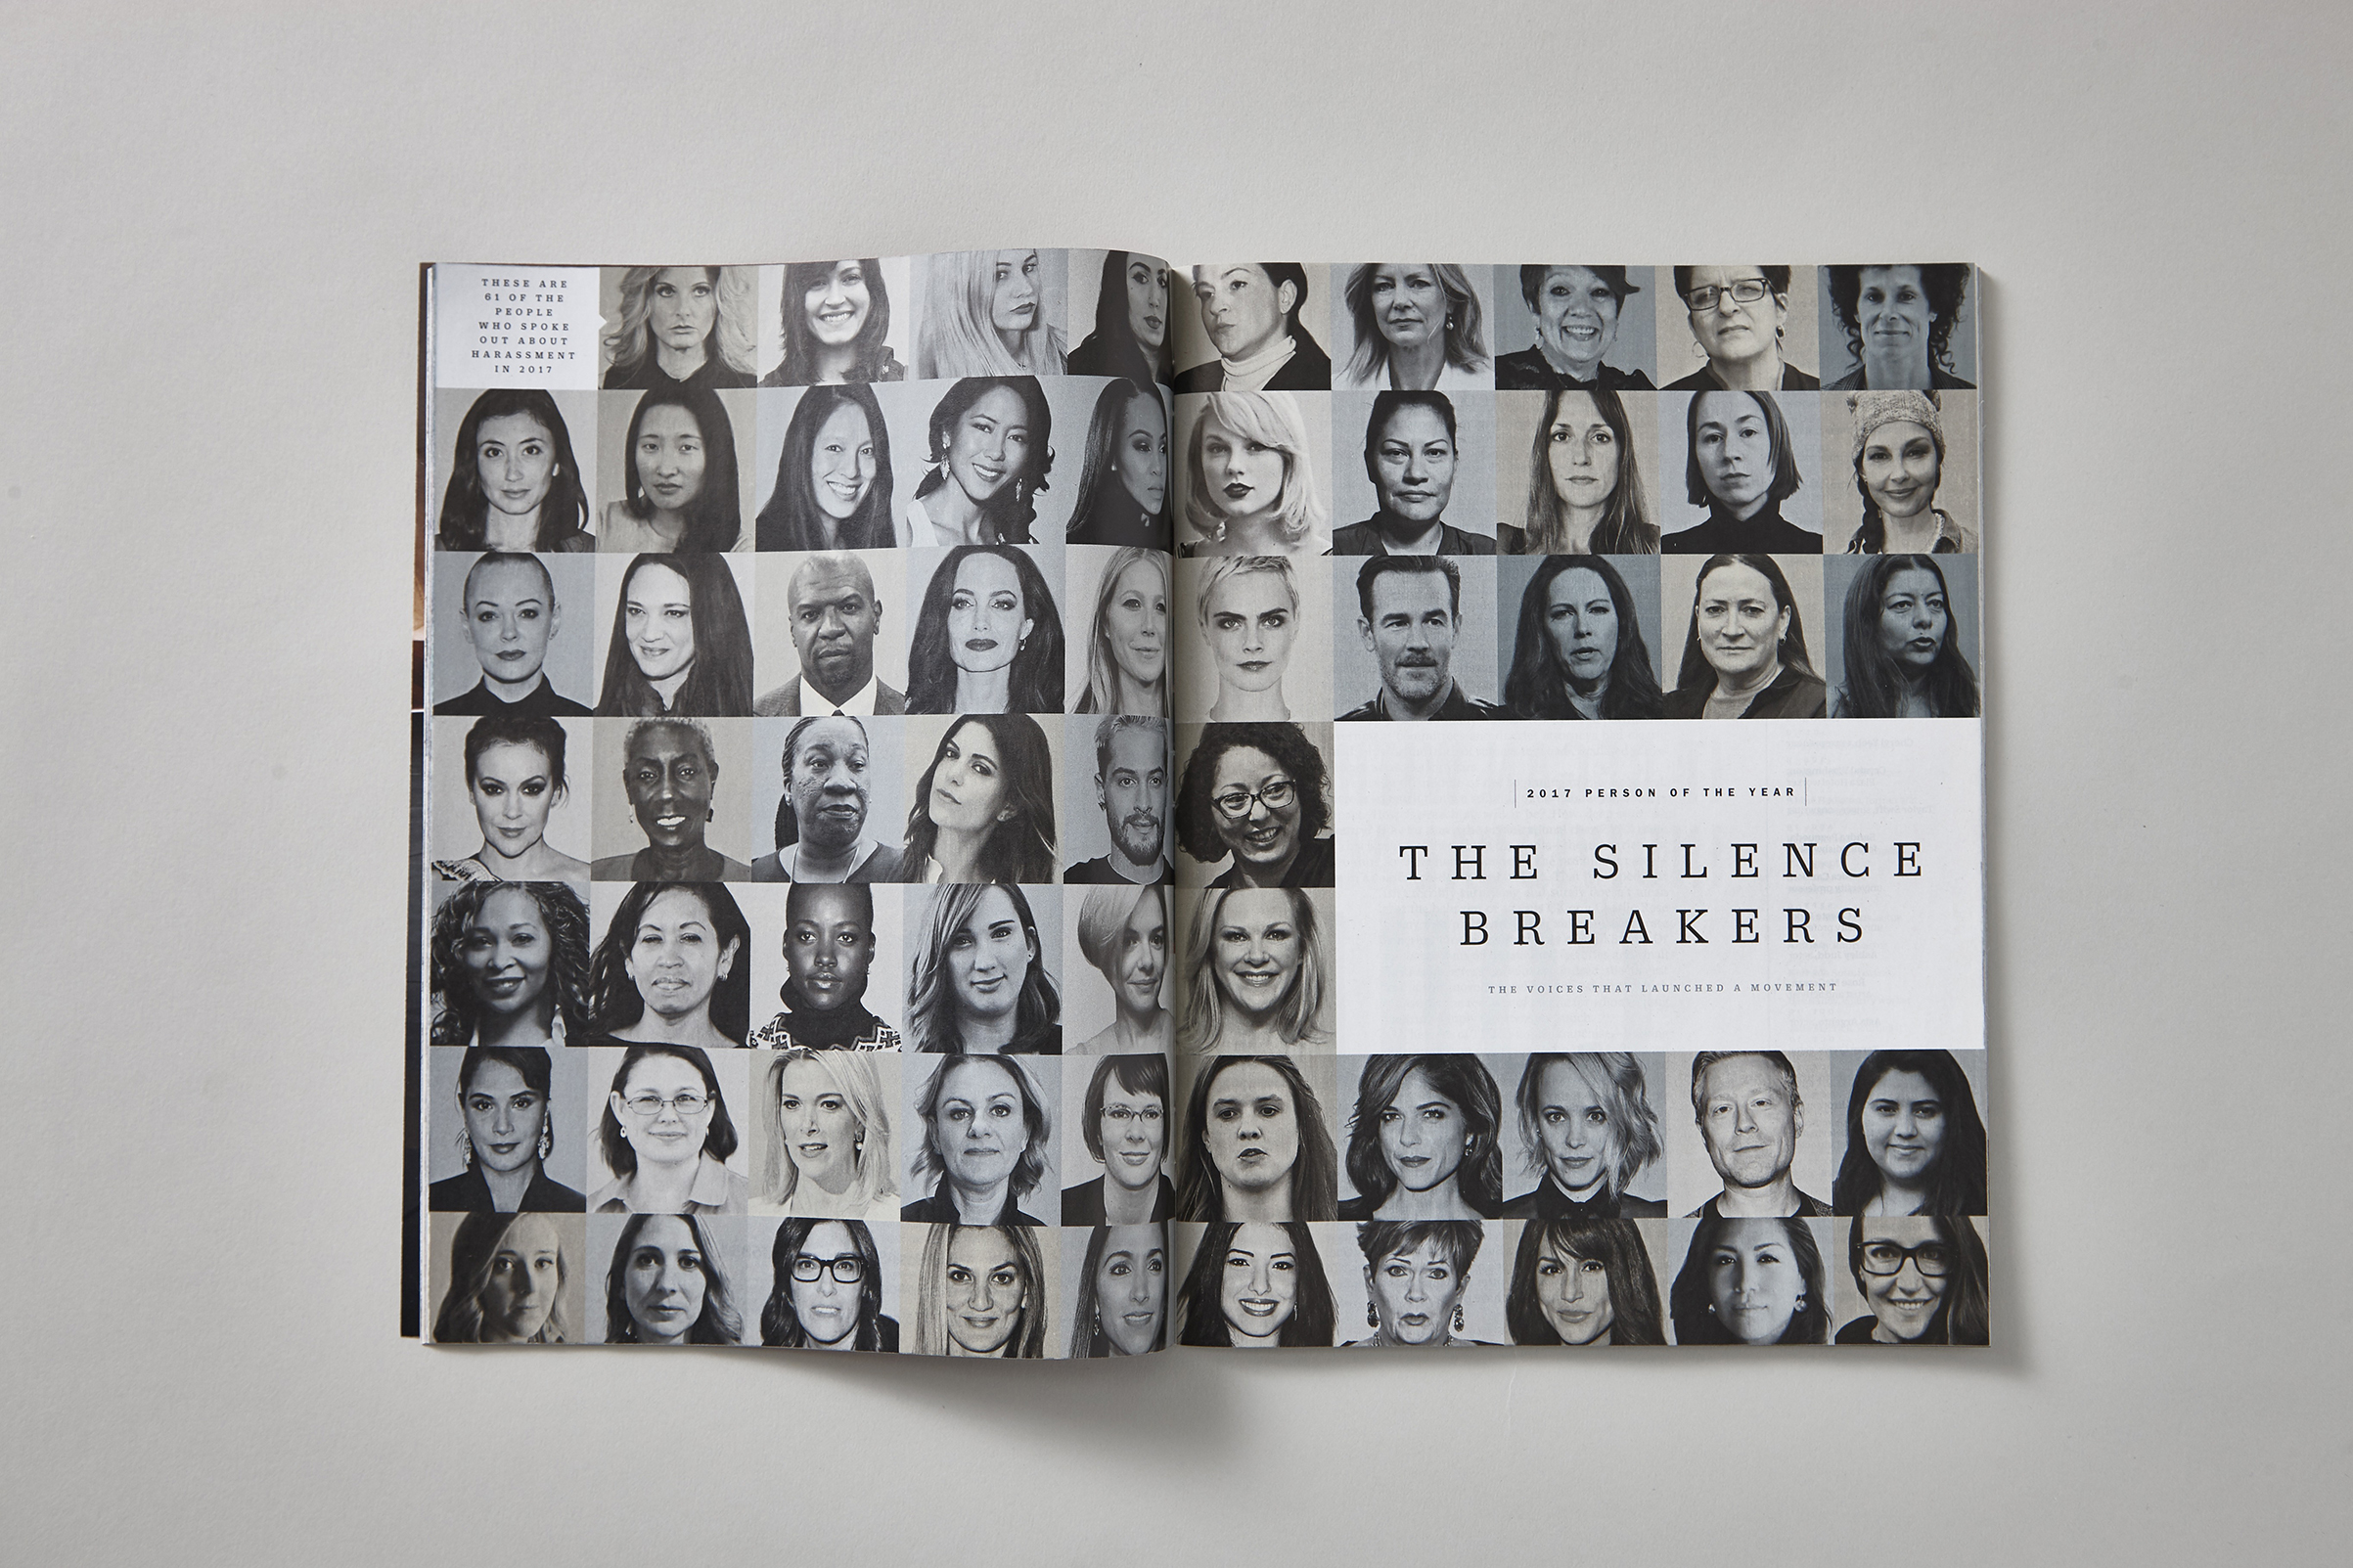 TIME's 2017 Person of the Year was the Silence Breakers, a group of people spanning several industries who spoke out against sexual harassment at work